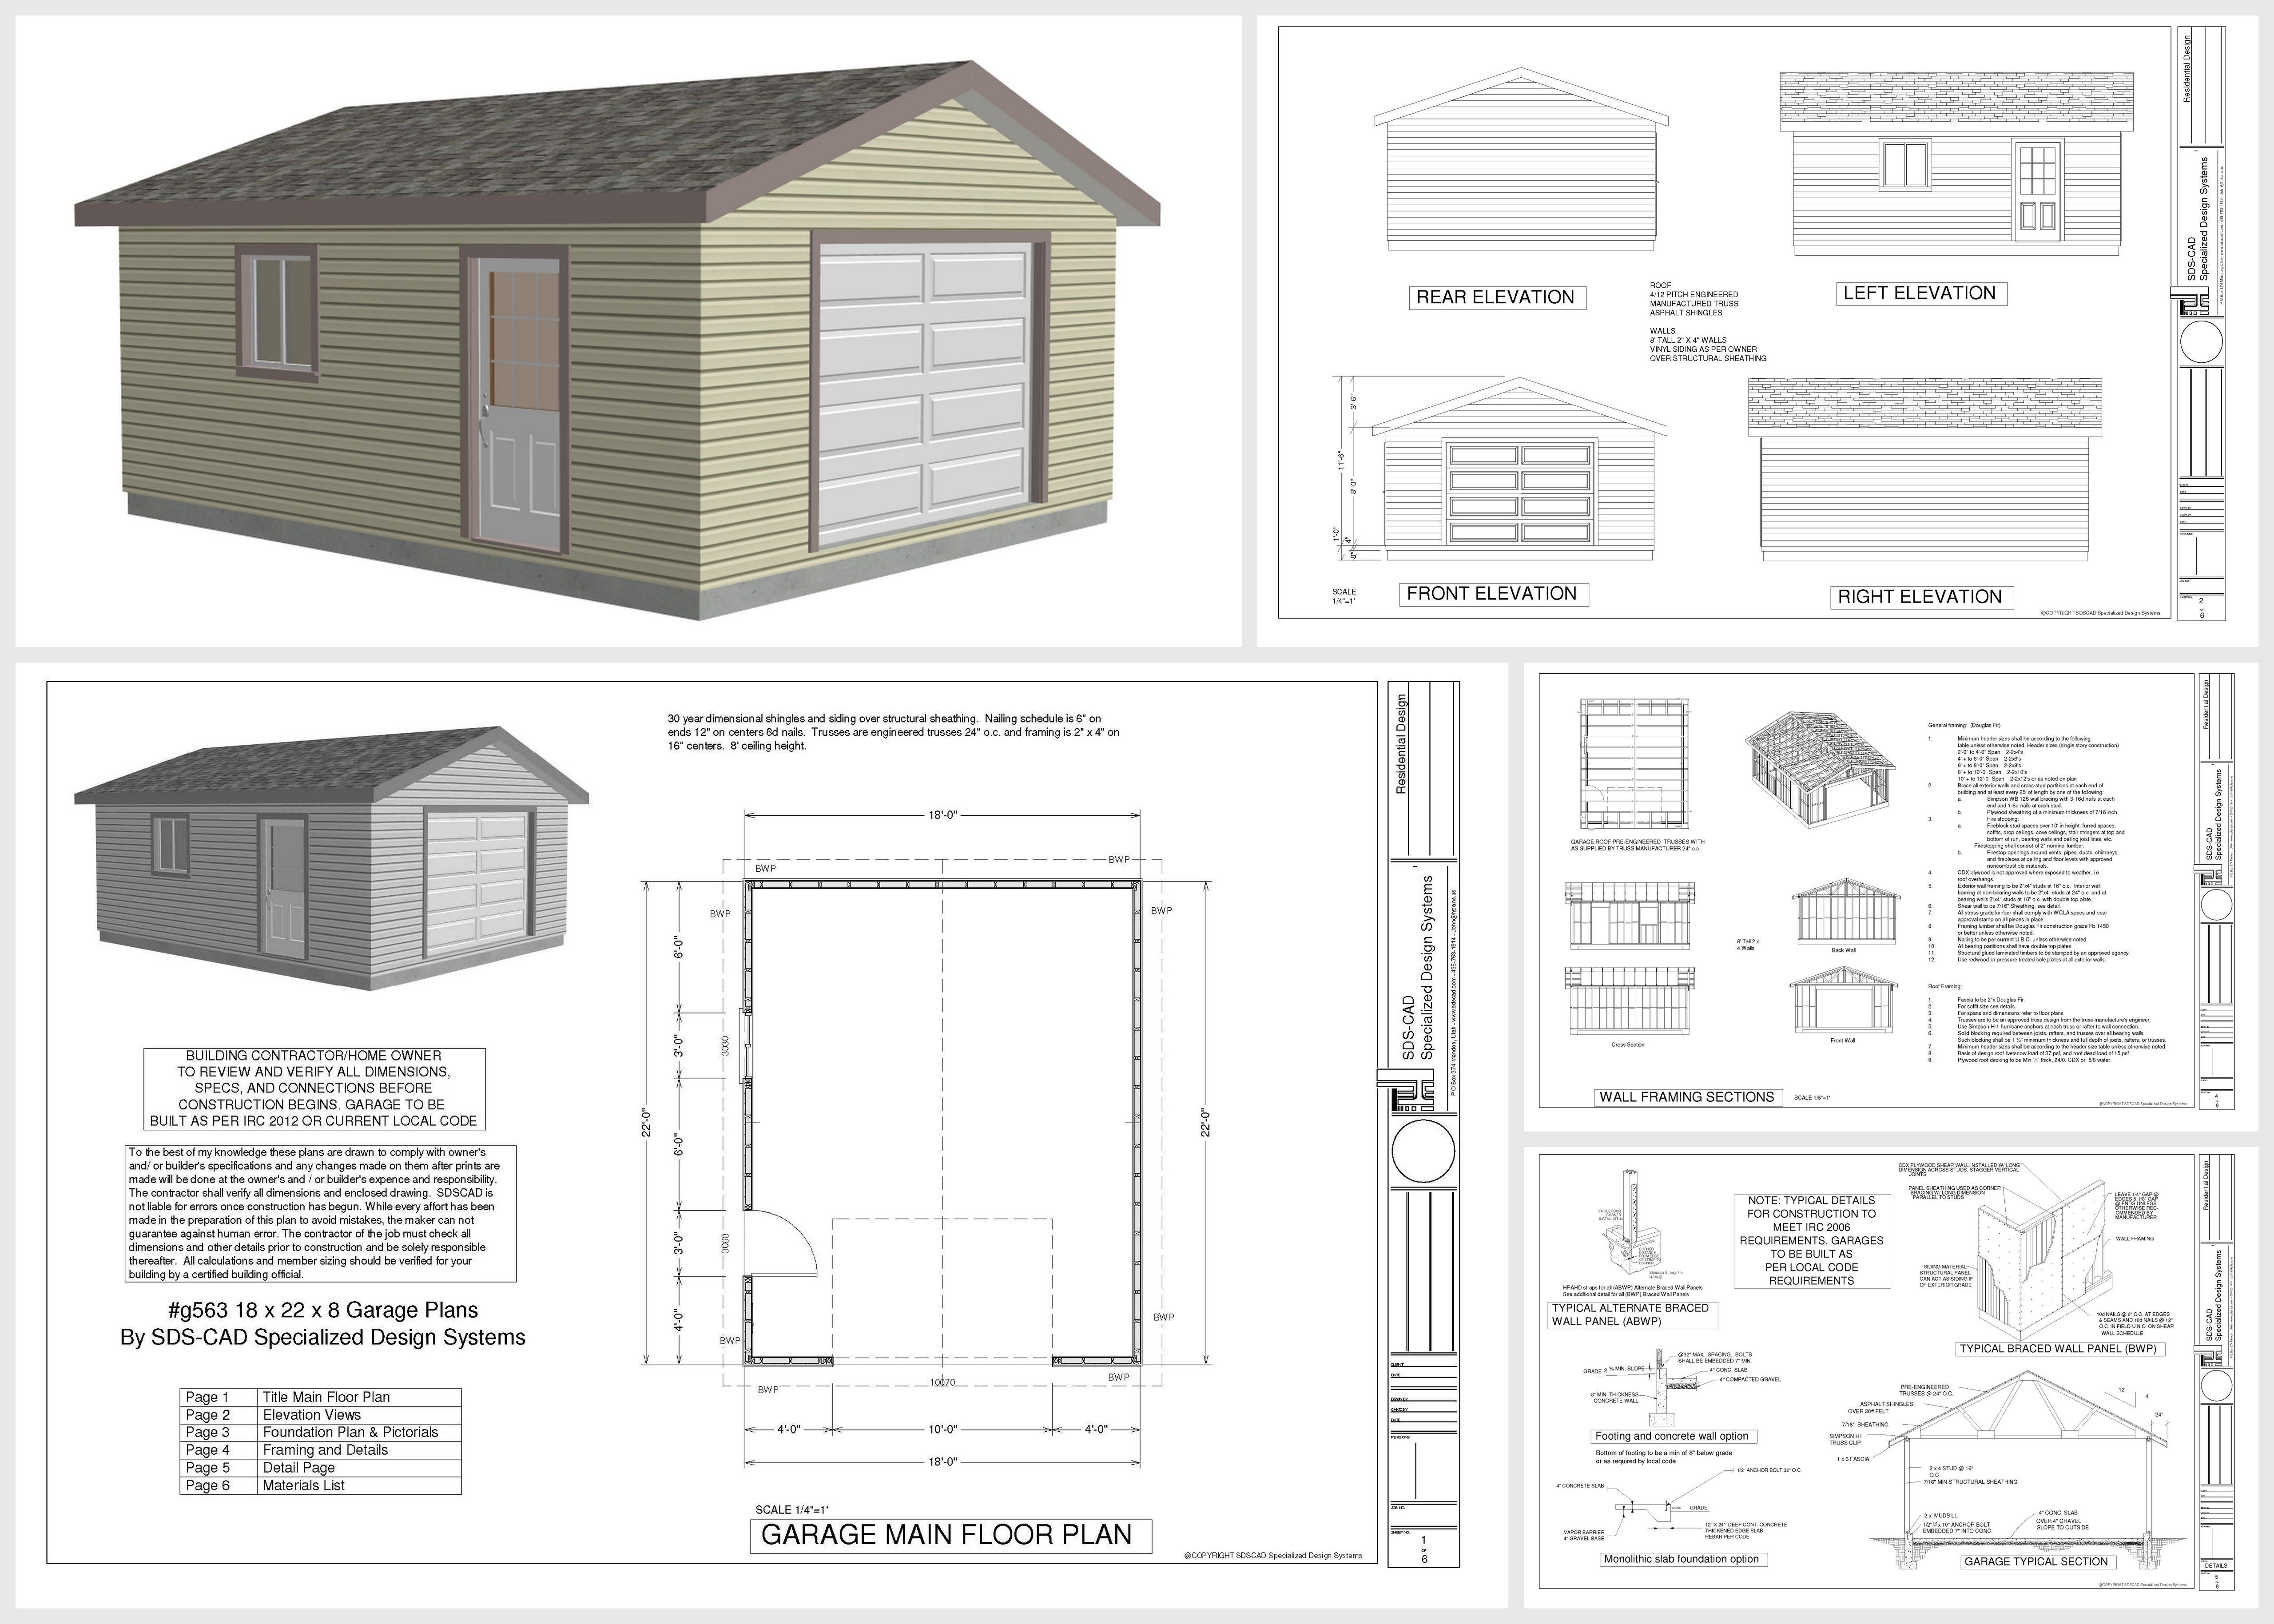 download free 18 x 22 garage plans